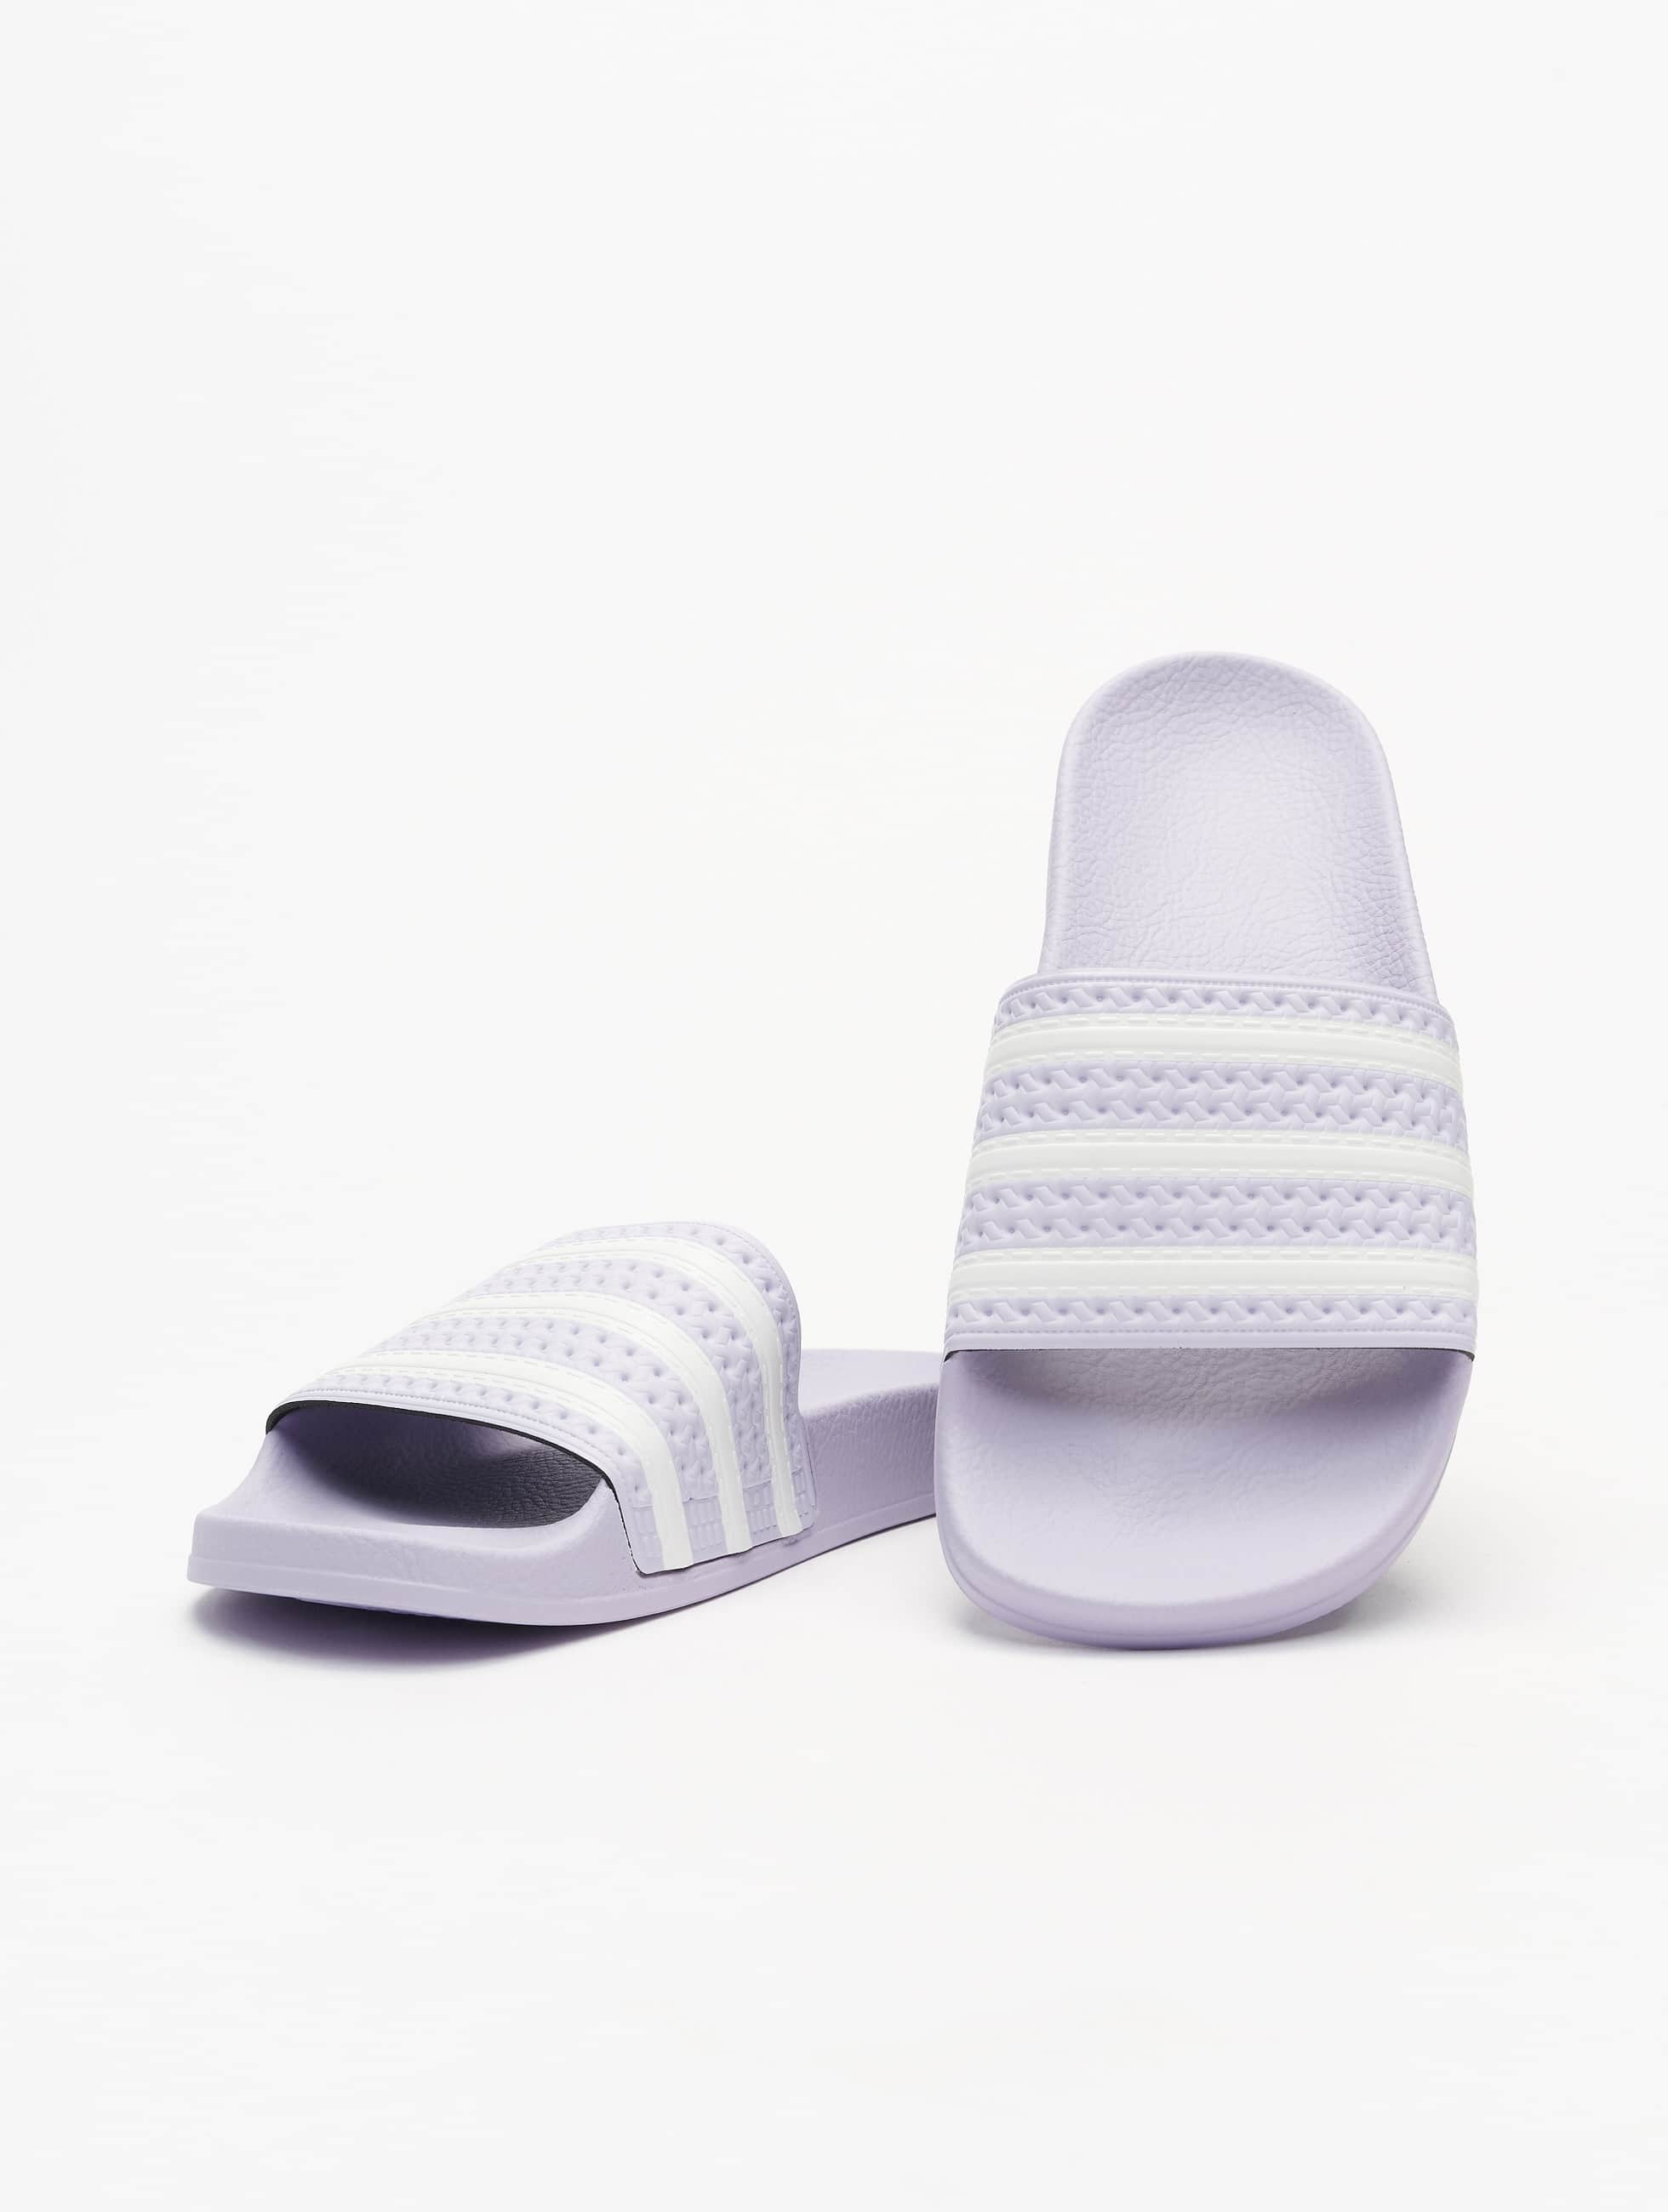 Adidas Adilette Sandals Purple Tint/Ftwr White/Purple Tint